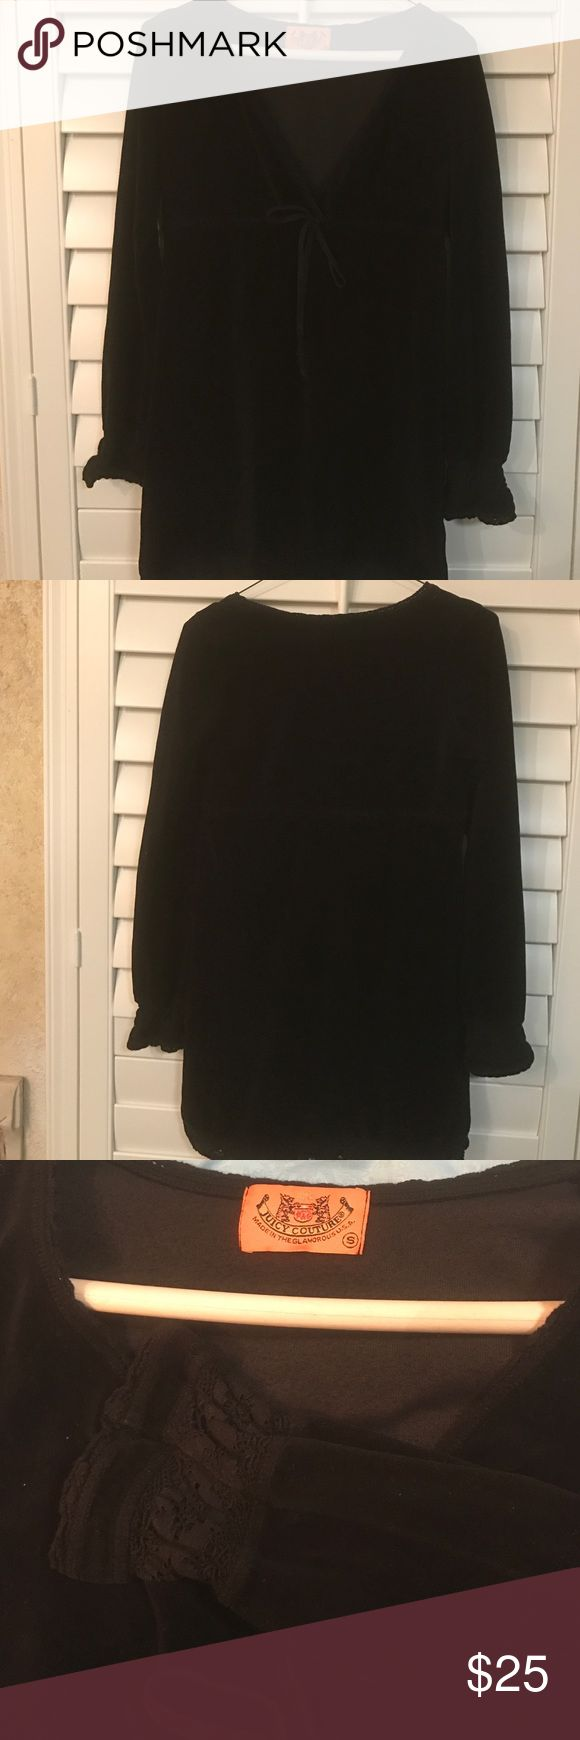 Black Juicy Couture Velour Dress This is a Long Sleeve Black Velour dress that has a lace patten on the sleeve tried to show in pic 3. In good condition and is supper cute. Size small Juicy Couture Dresses Long Sleeve